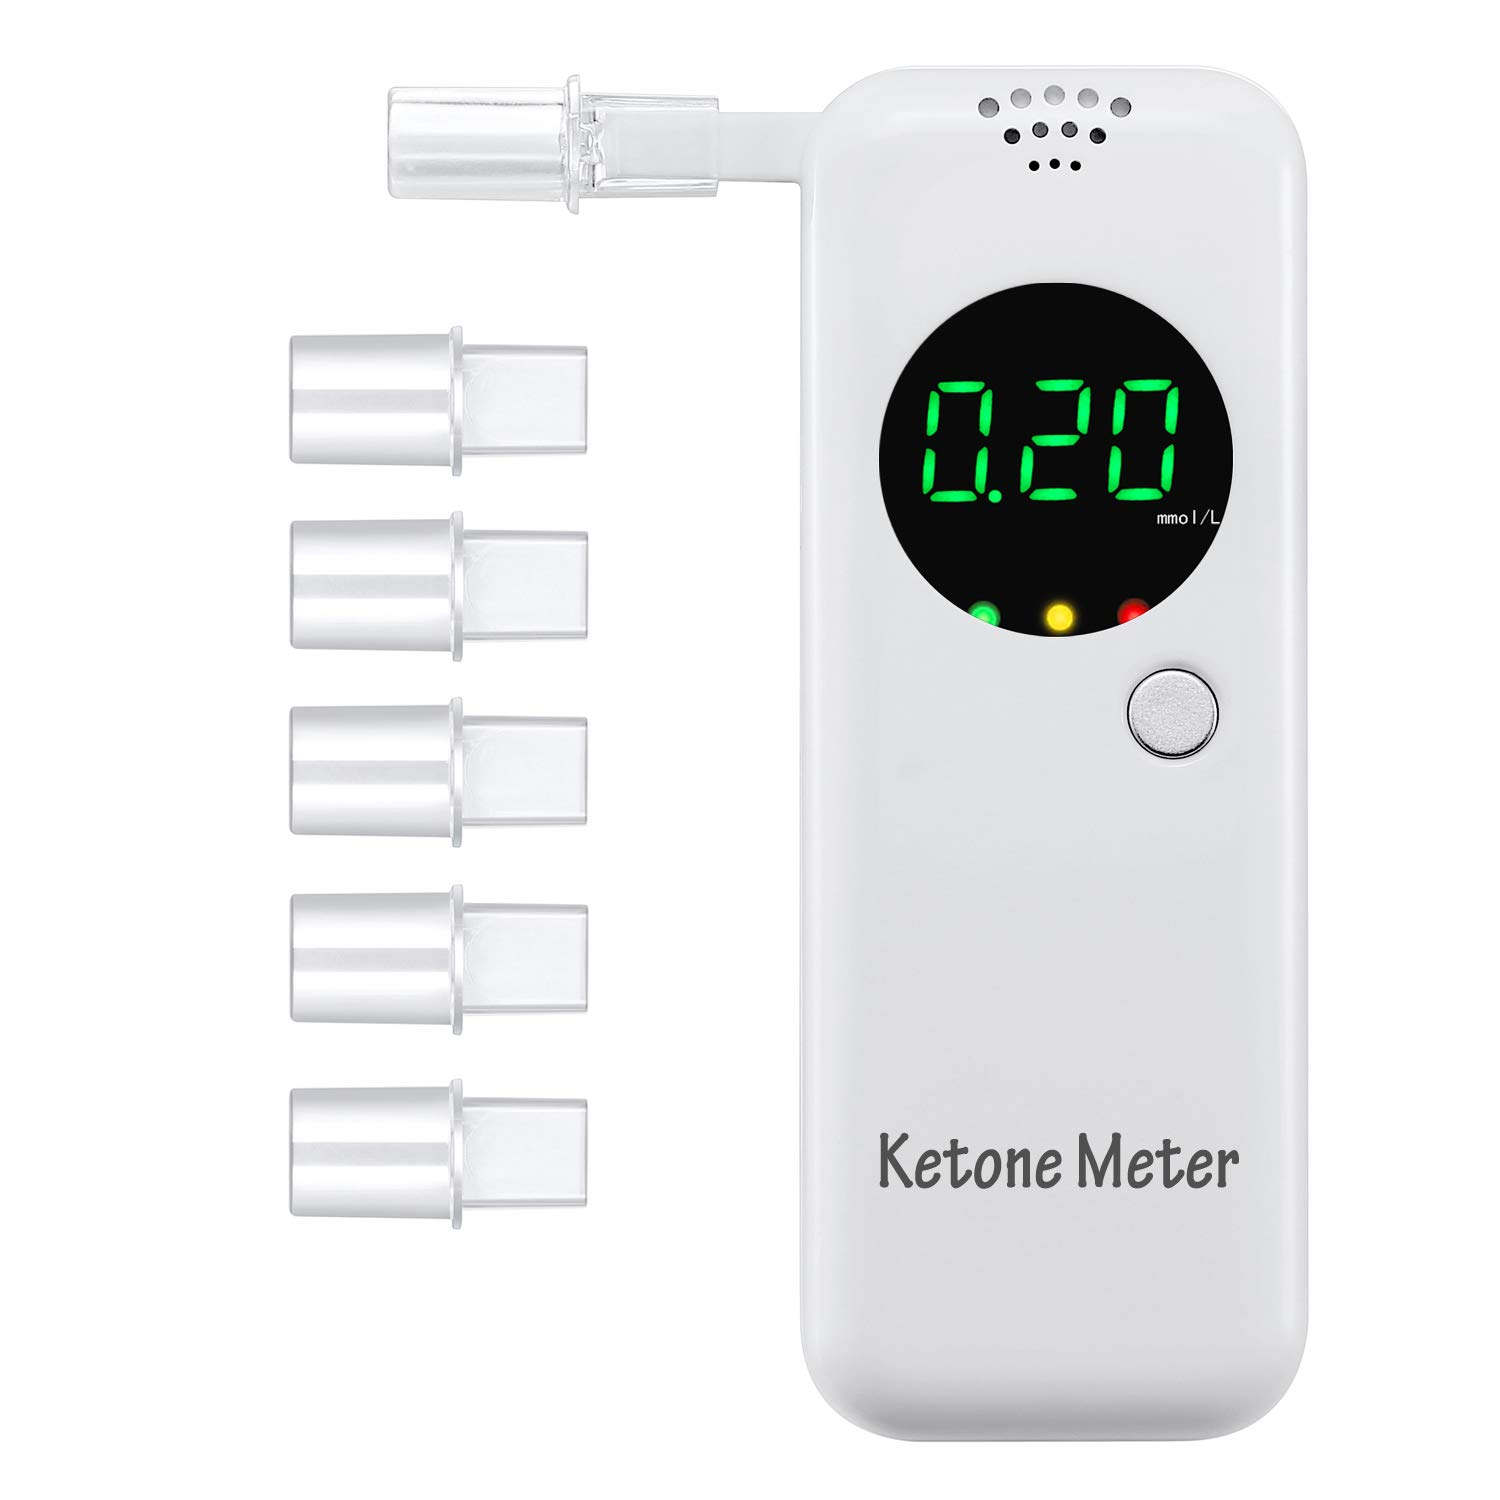 Anntoo Ketone Meter Ketone Testing Kit with 5Pcs Replaceable Mouthpieces by Anntoo